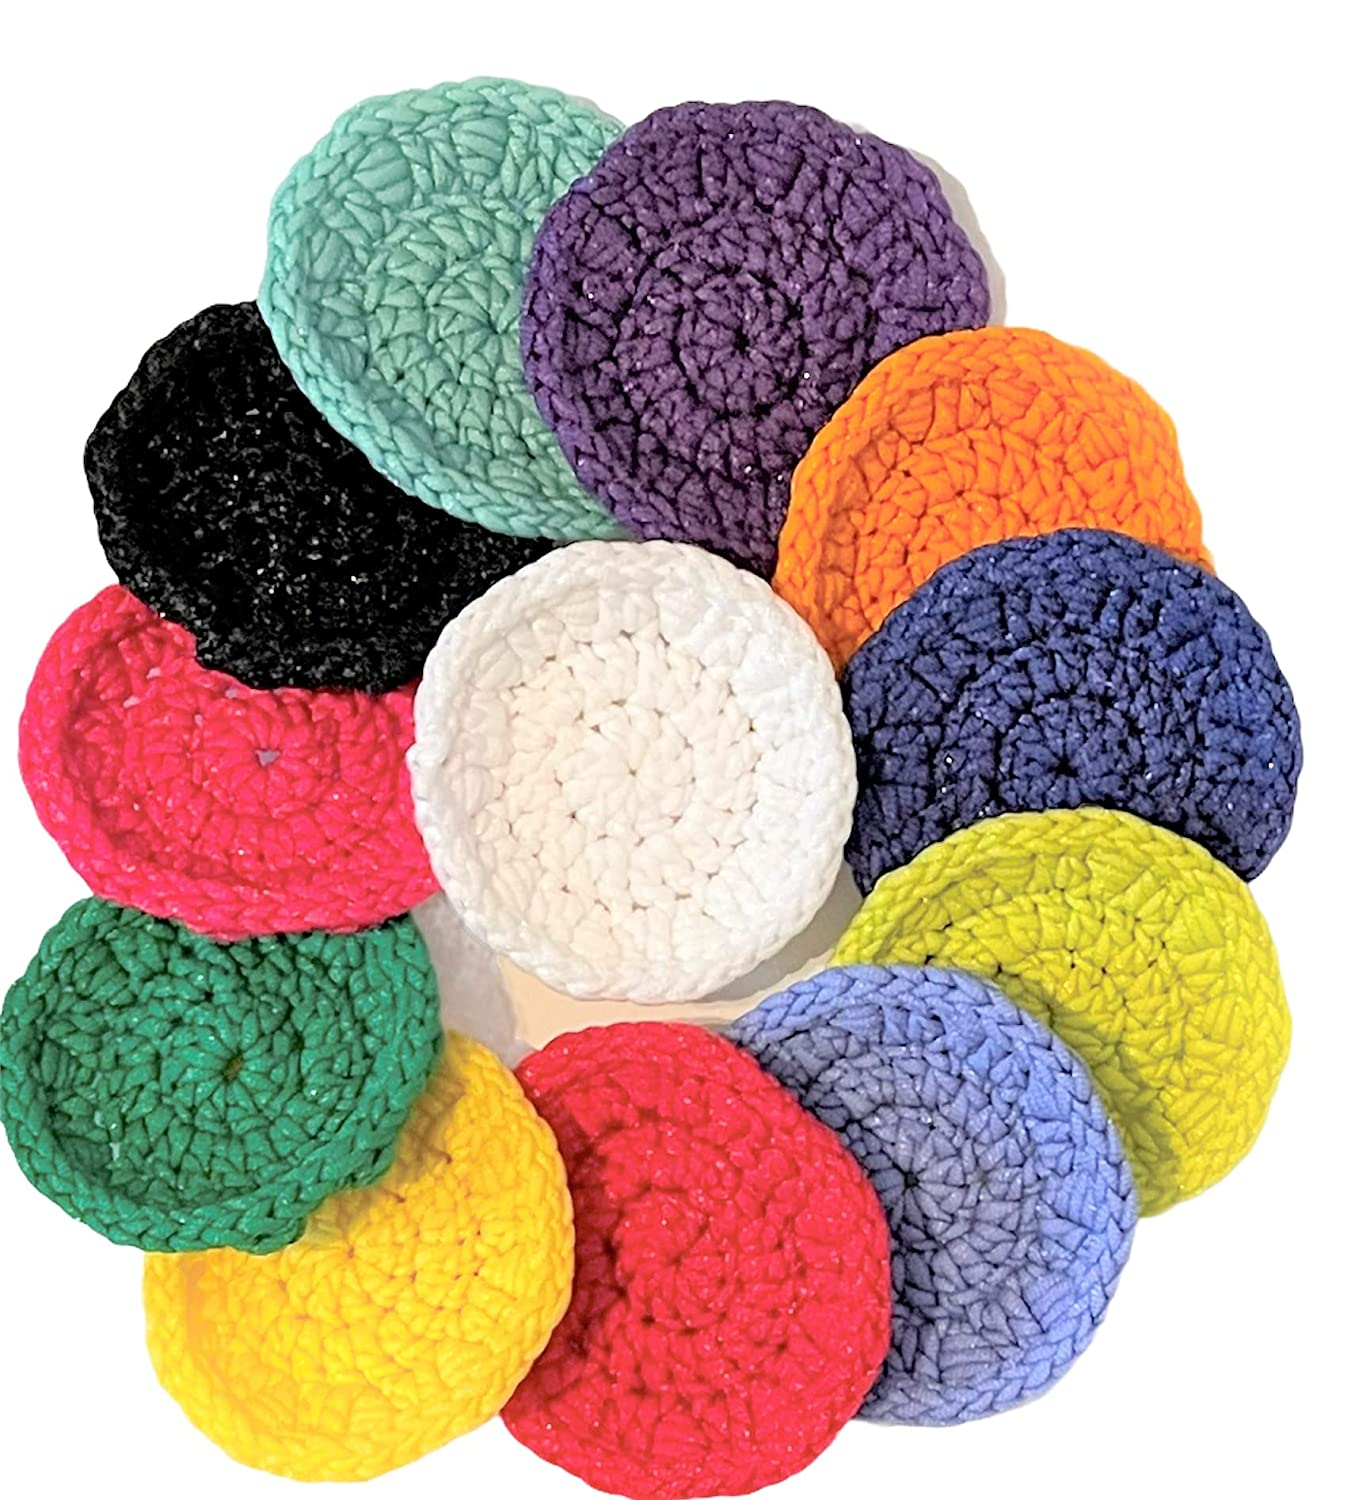 Round Free Super beauty product restock quality top! Shipping New Dish Scrubbie - Single Layer of Yarn 3 R Set Acrylic